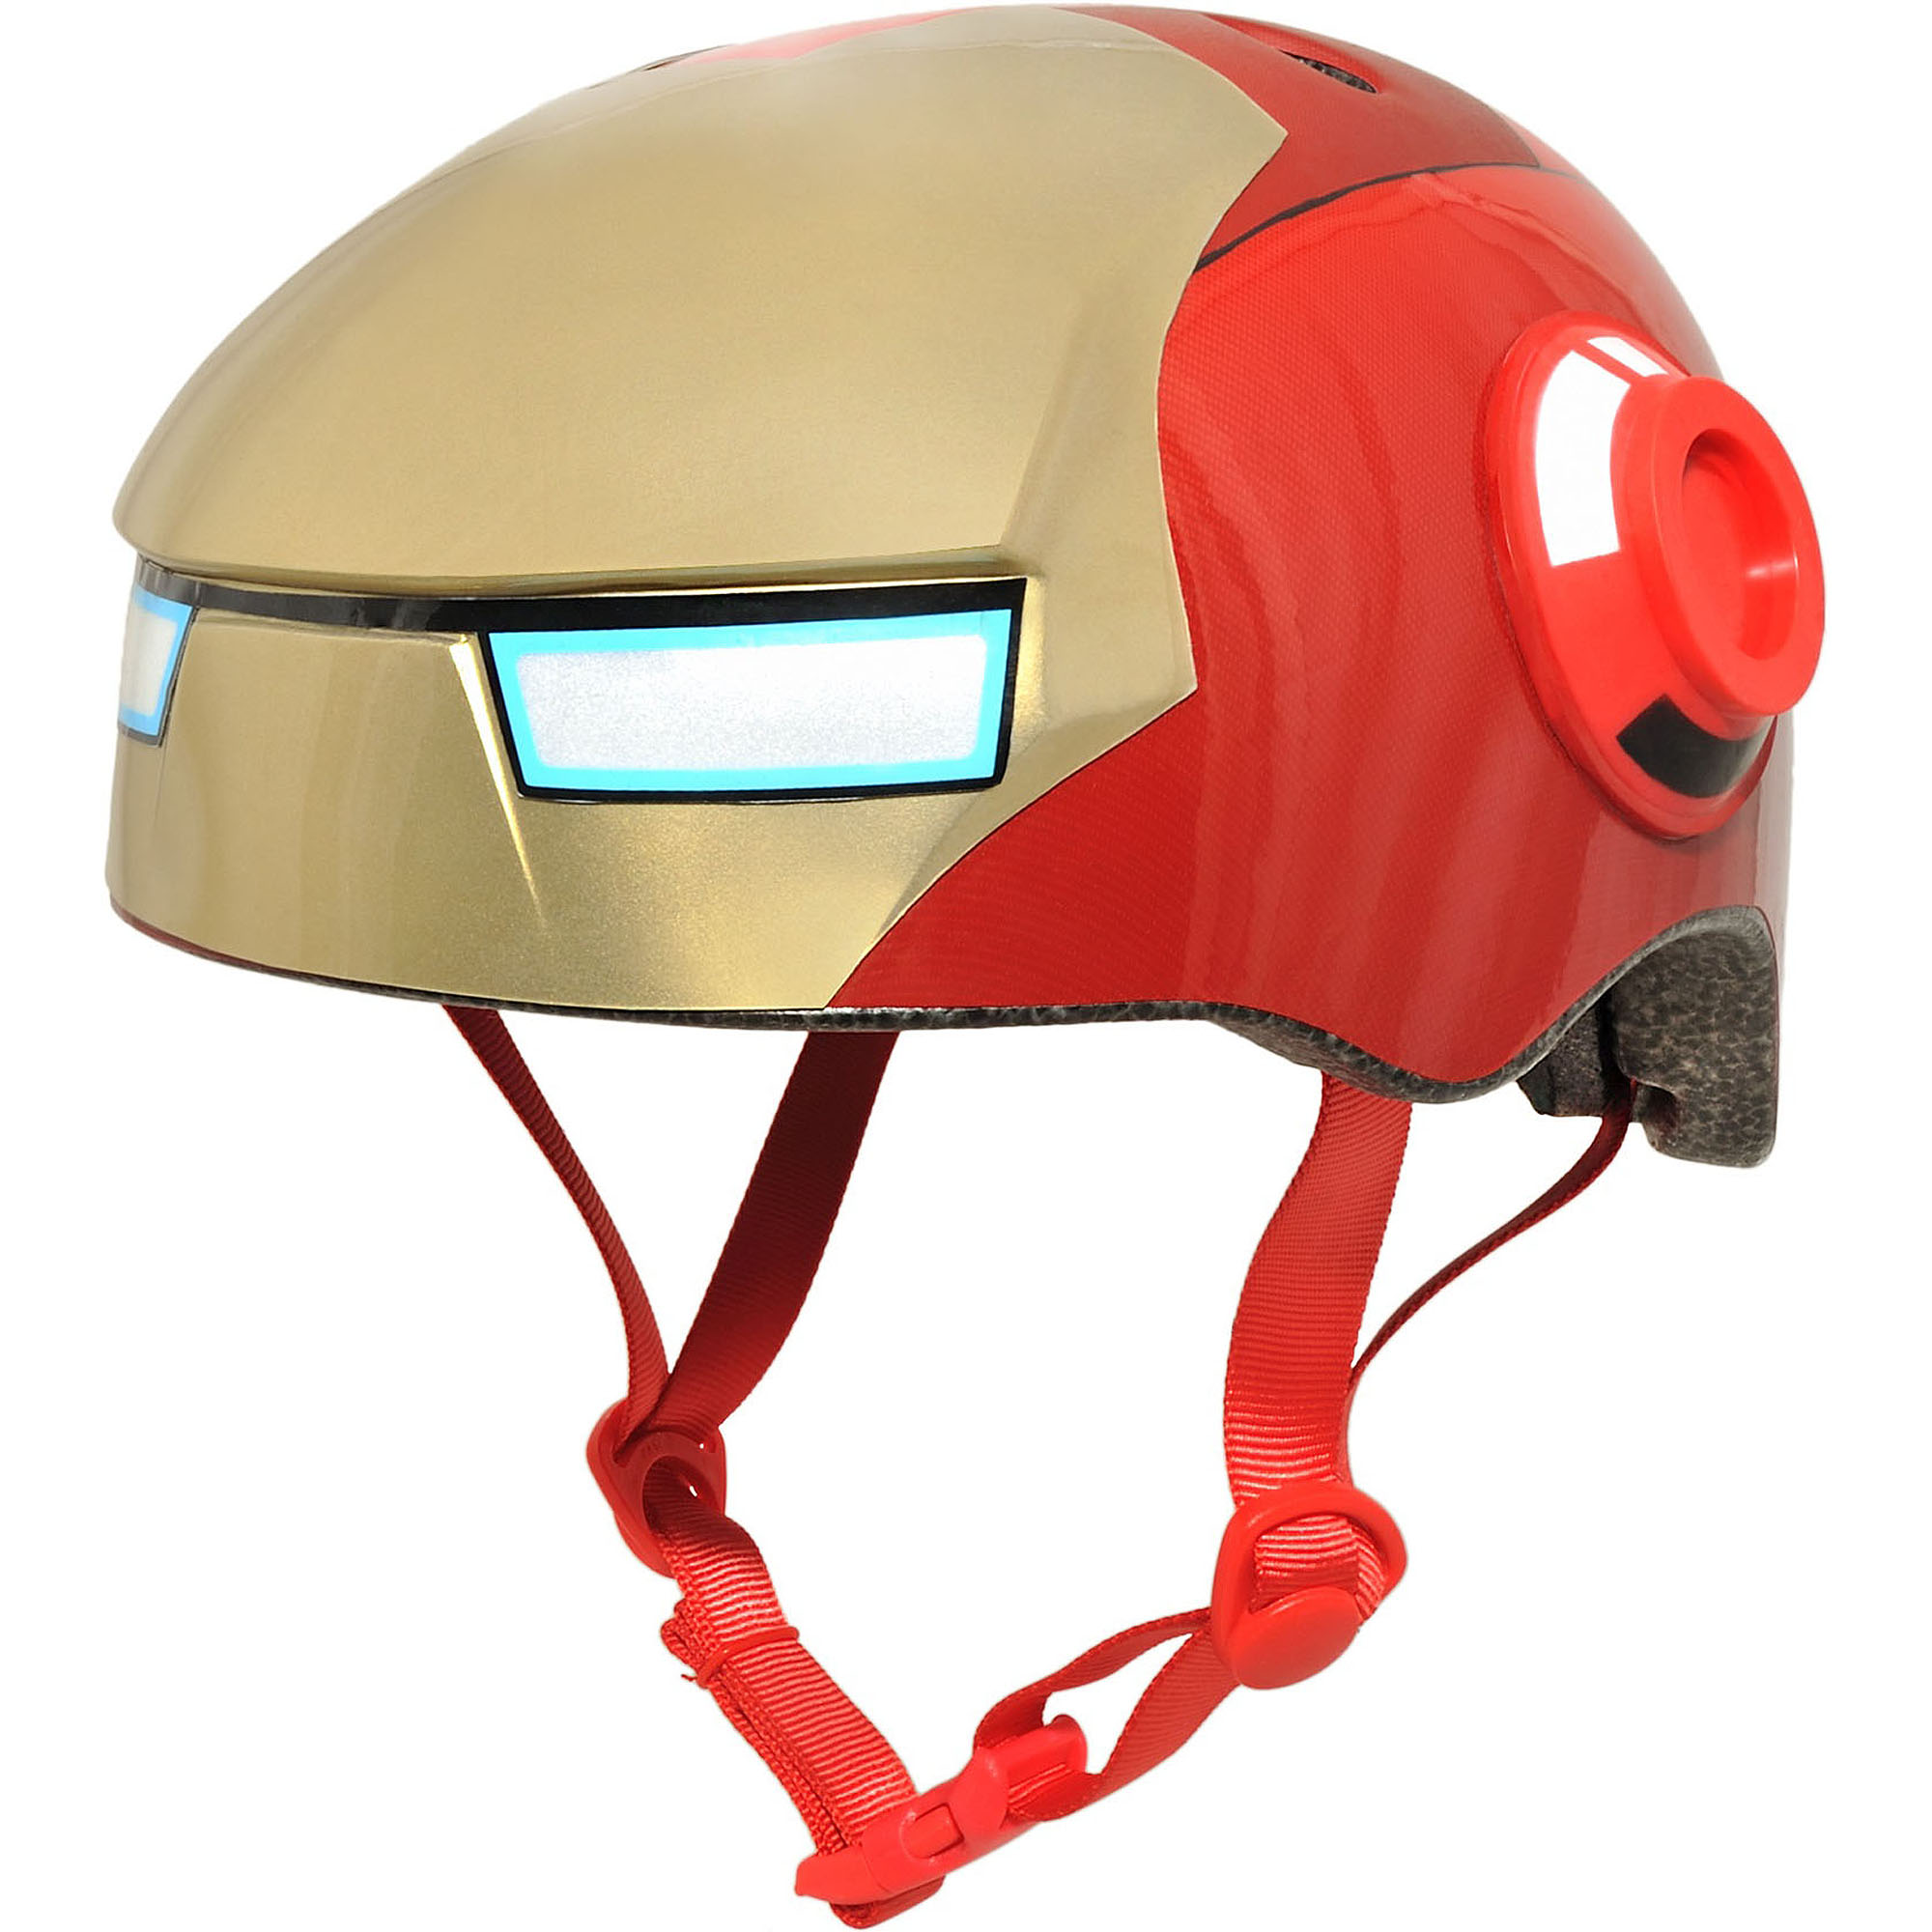 Marvel Iron Man Bike Helmet, Child